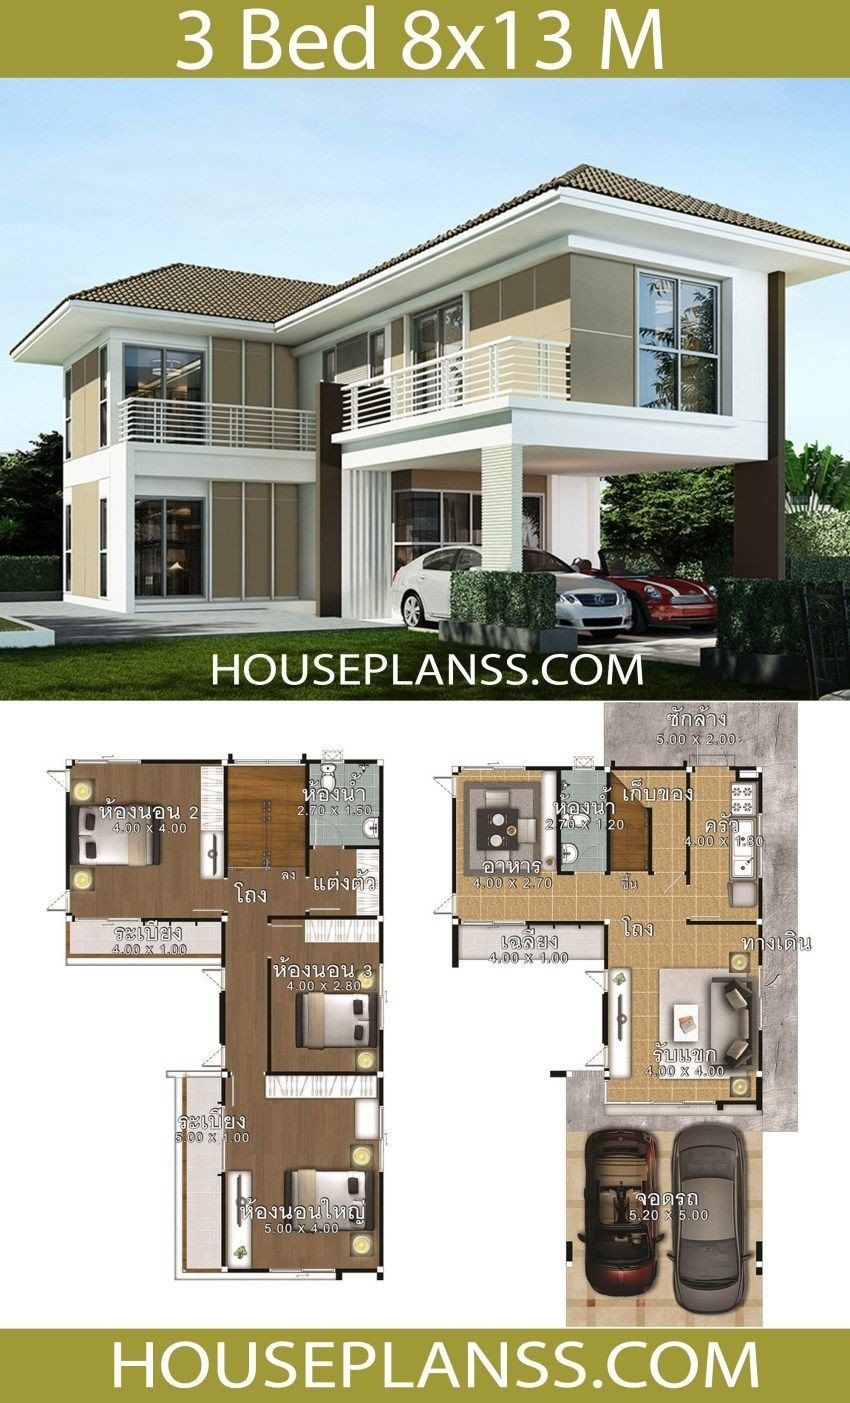 Modern House Designs Double Floor House Plans Idea 8x13 With 3 Bedrooms Beautiful House Plans House Plans Model House Plan